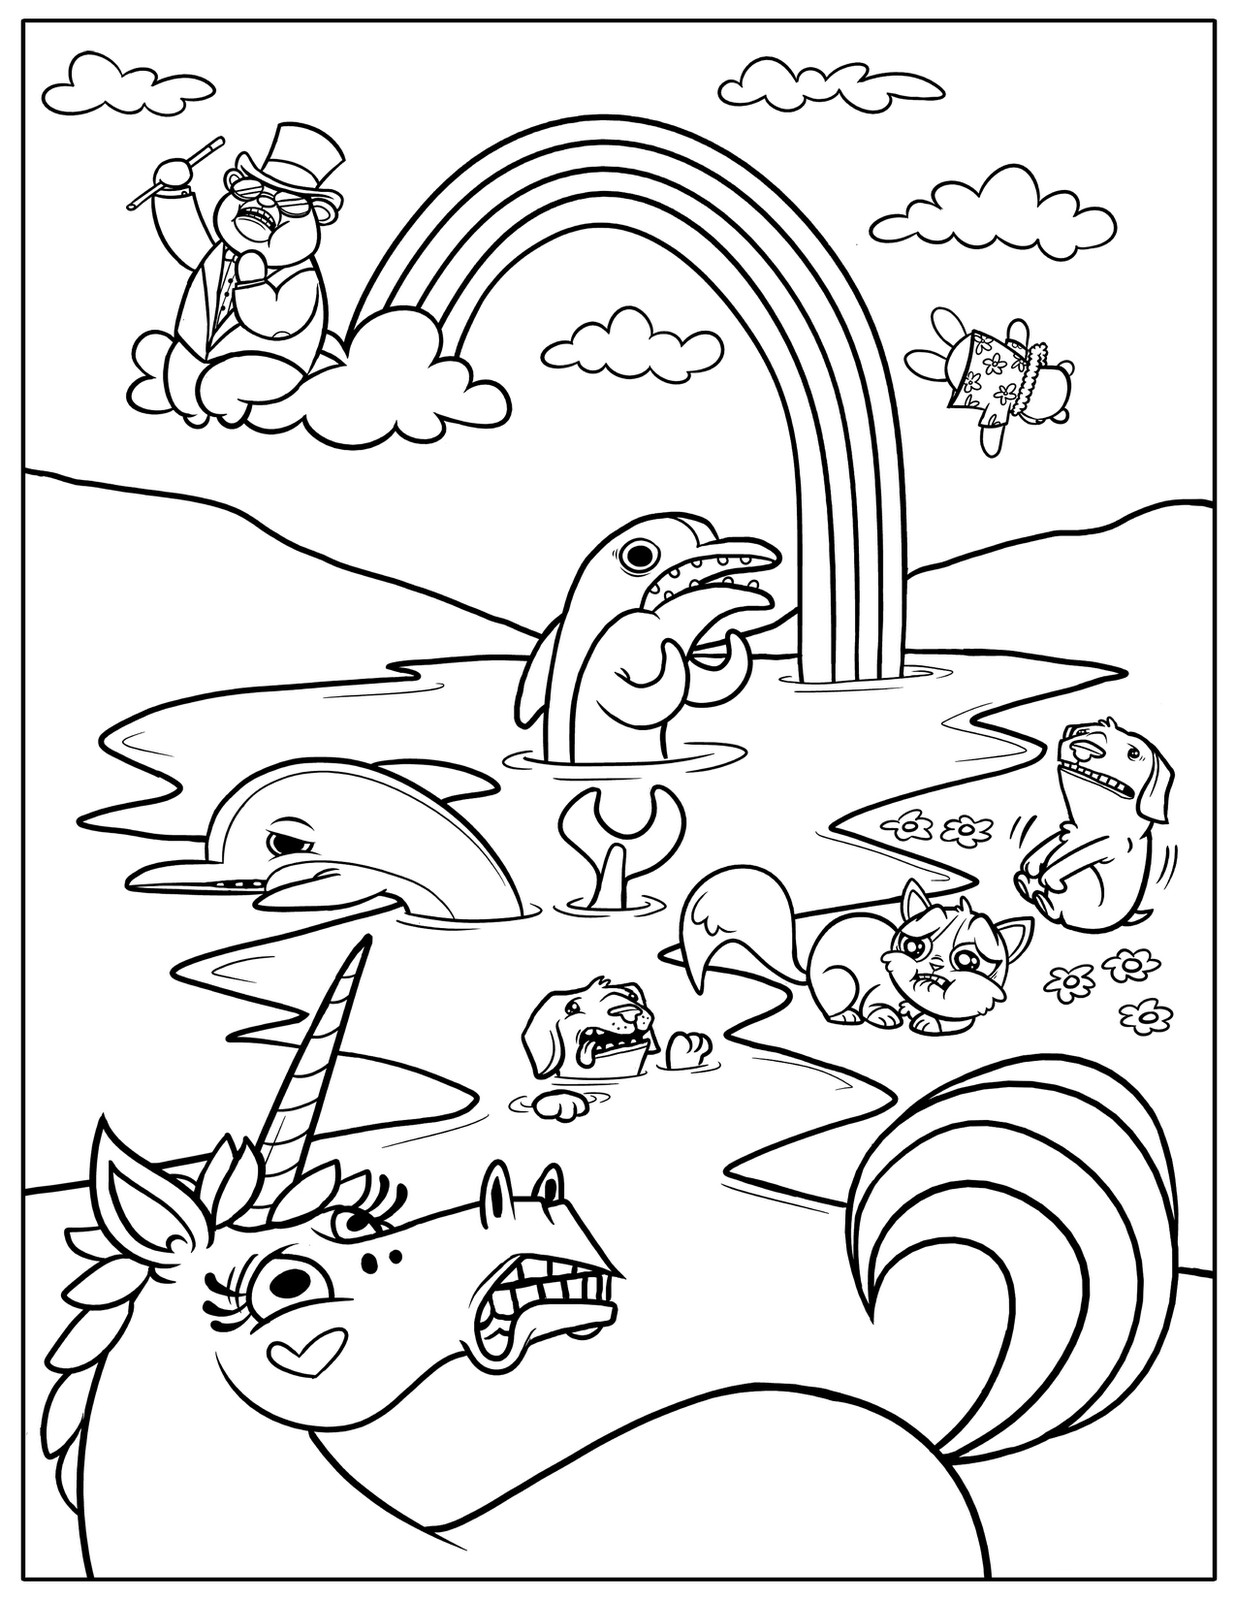 Coloring Book For Kids Games  Free Printable Rainbow Coloring Pages For Kids